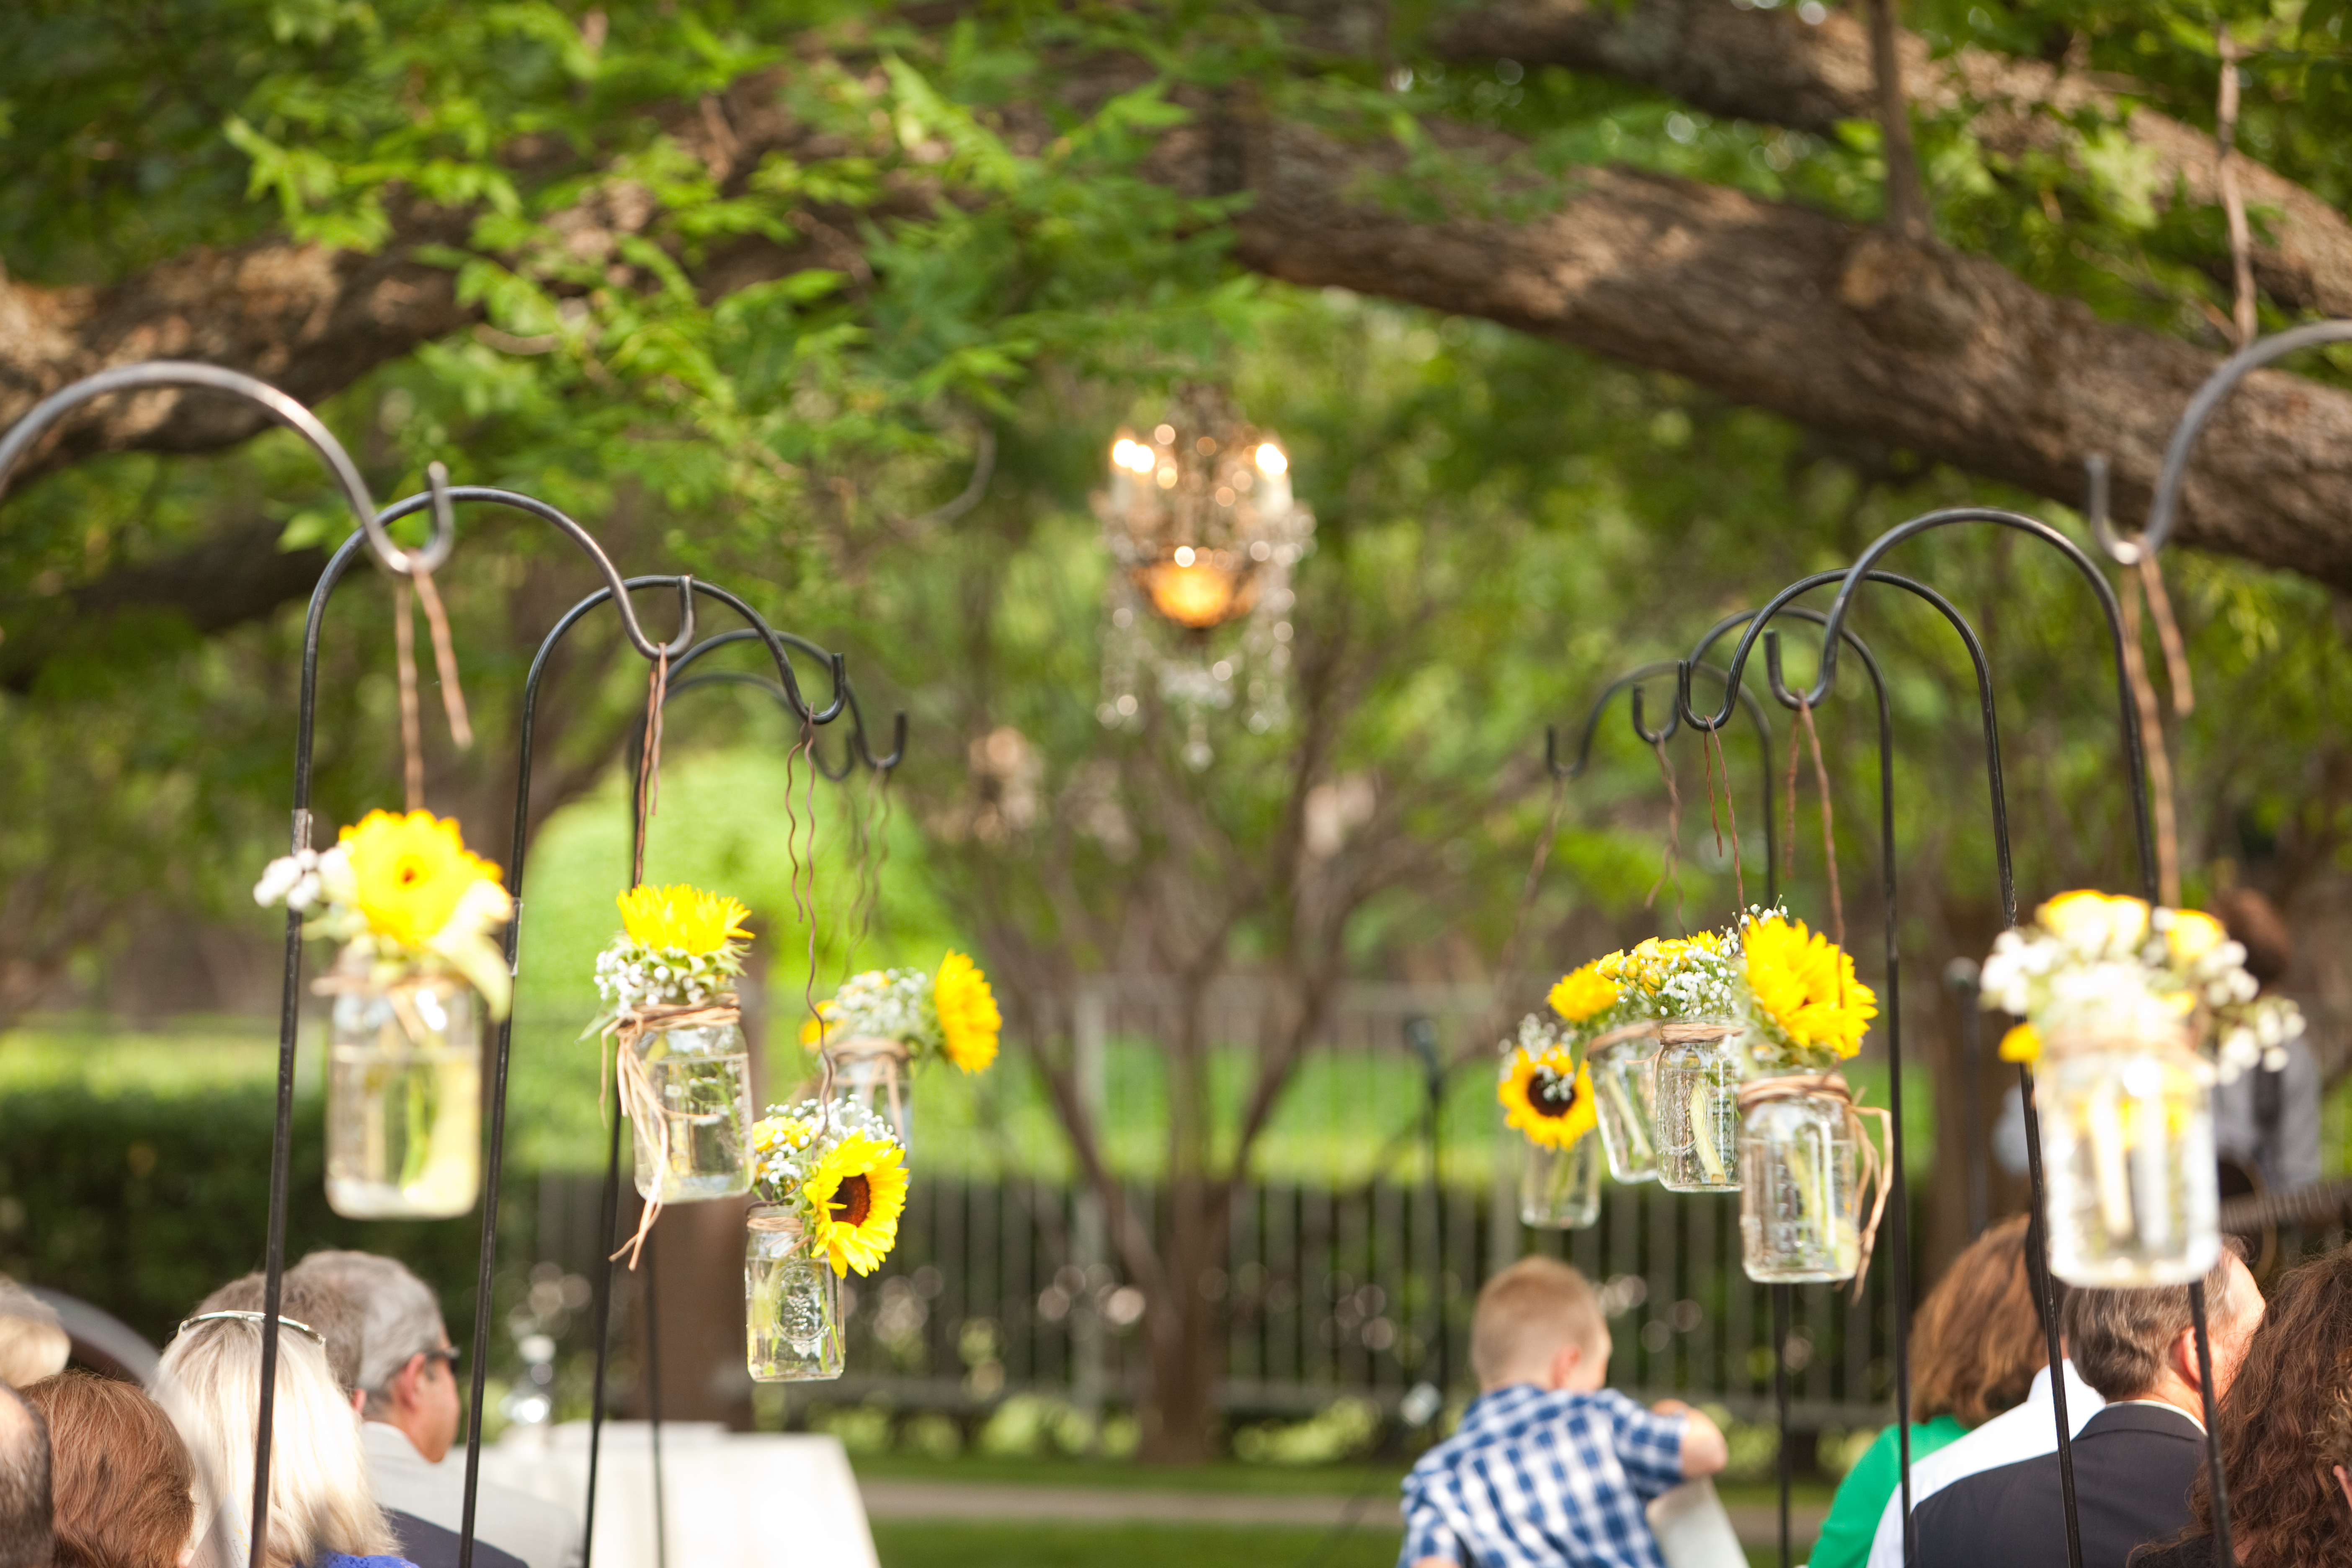 20120621-101017.jpg & outdoor wedding reception |